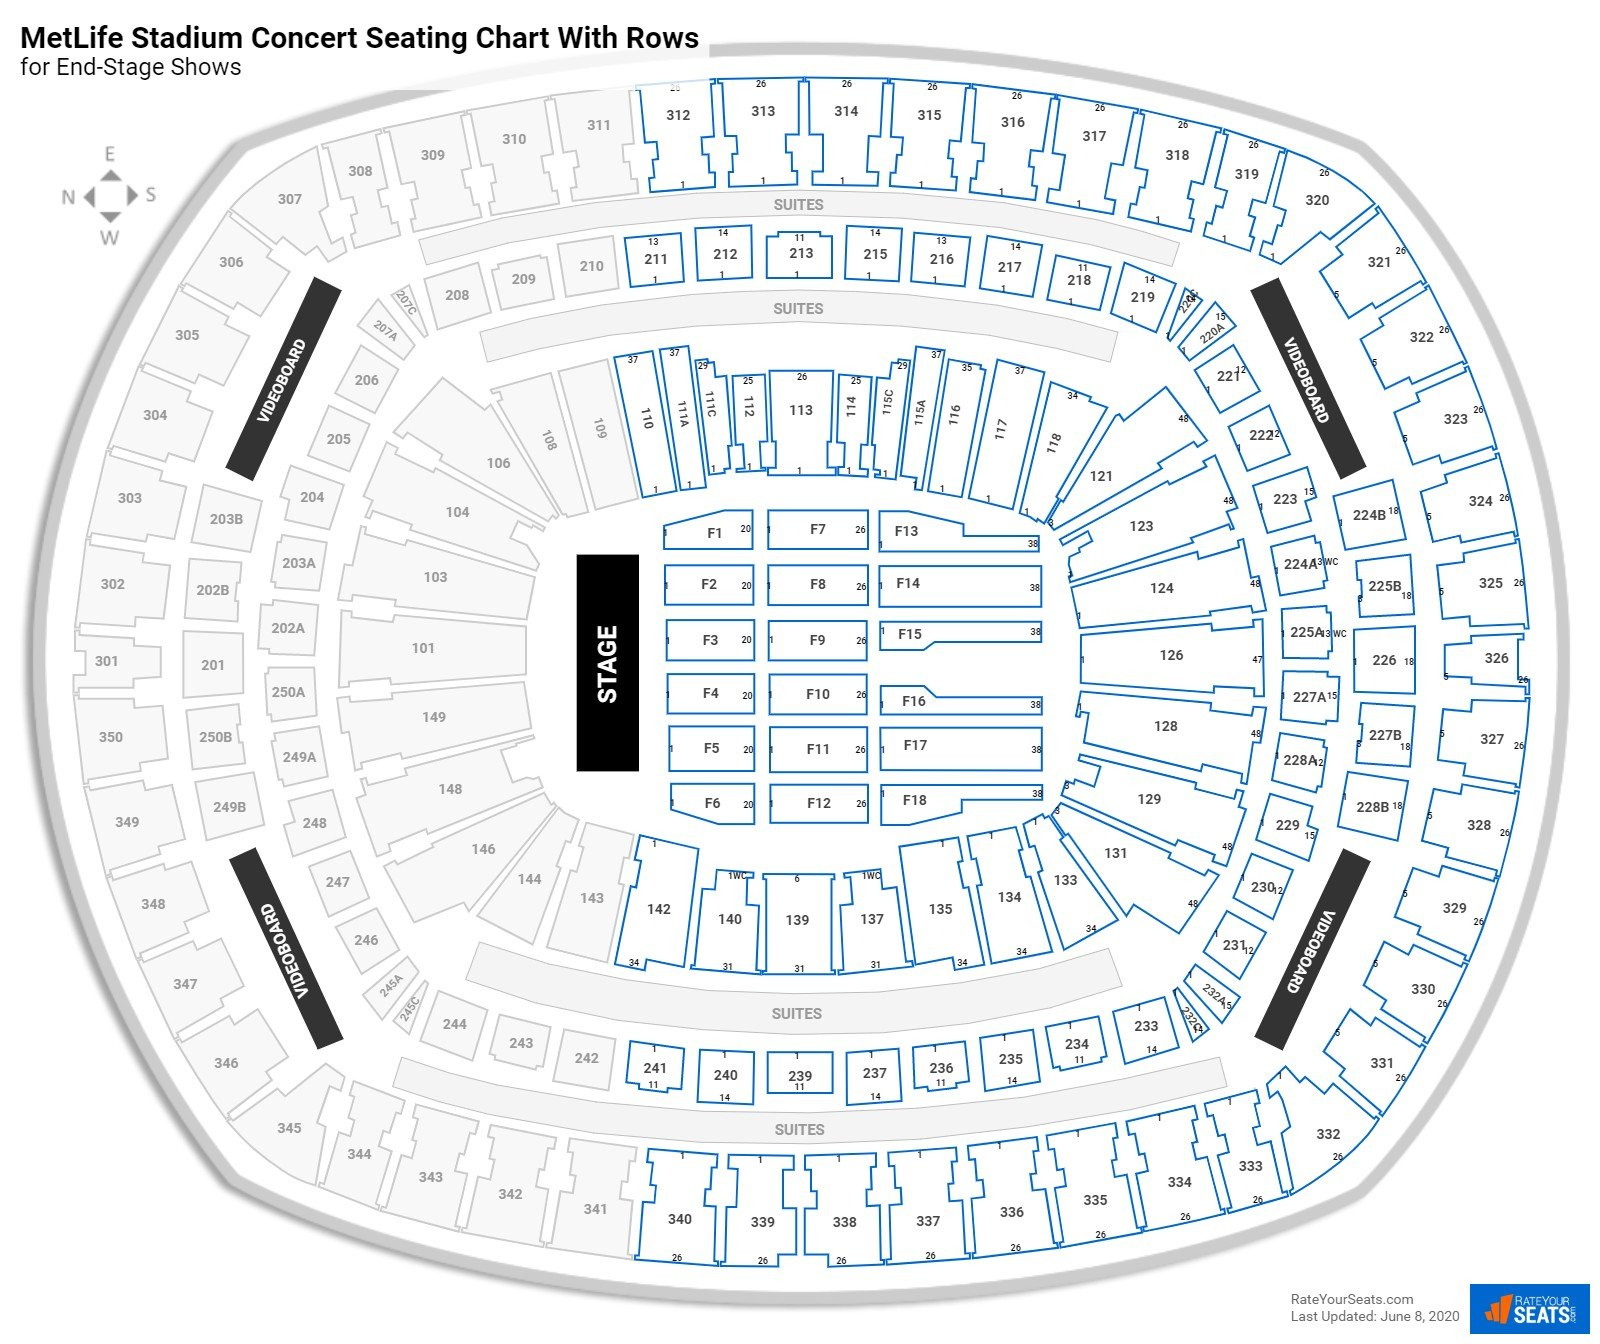 Metlife Stadium Seating Charts For Concerts Rateyourseats Com